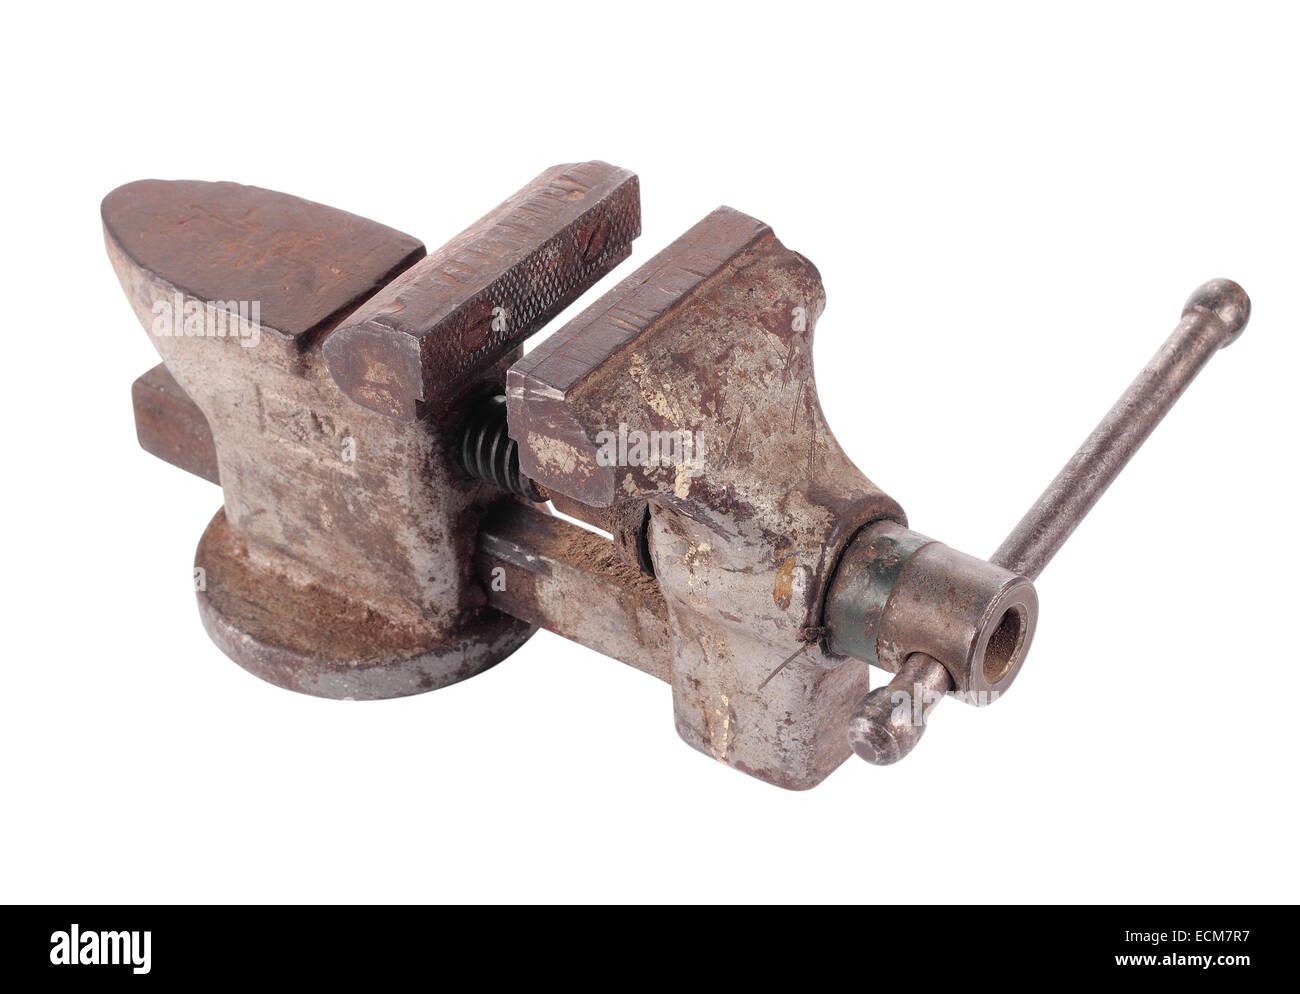 Rusty old vice on a white background. It is isolated, the worker of paths is present. - Stock Image